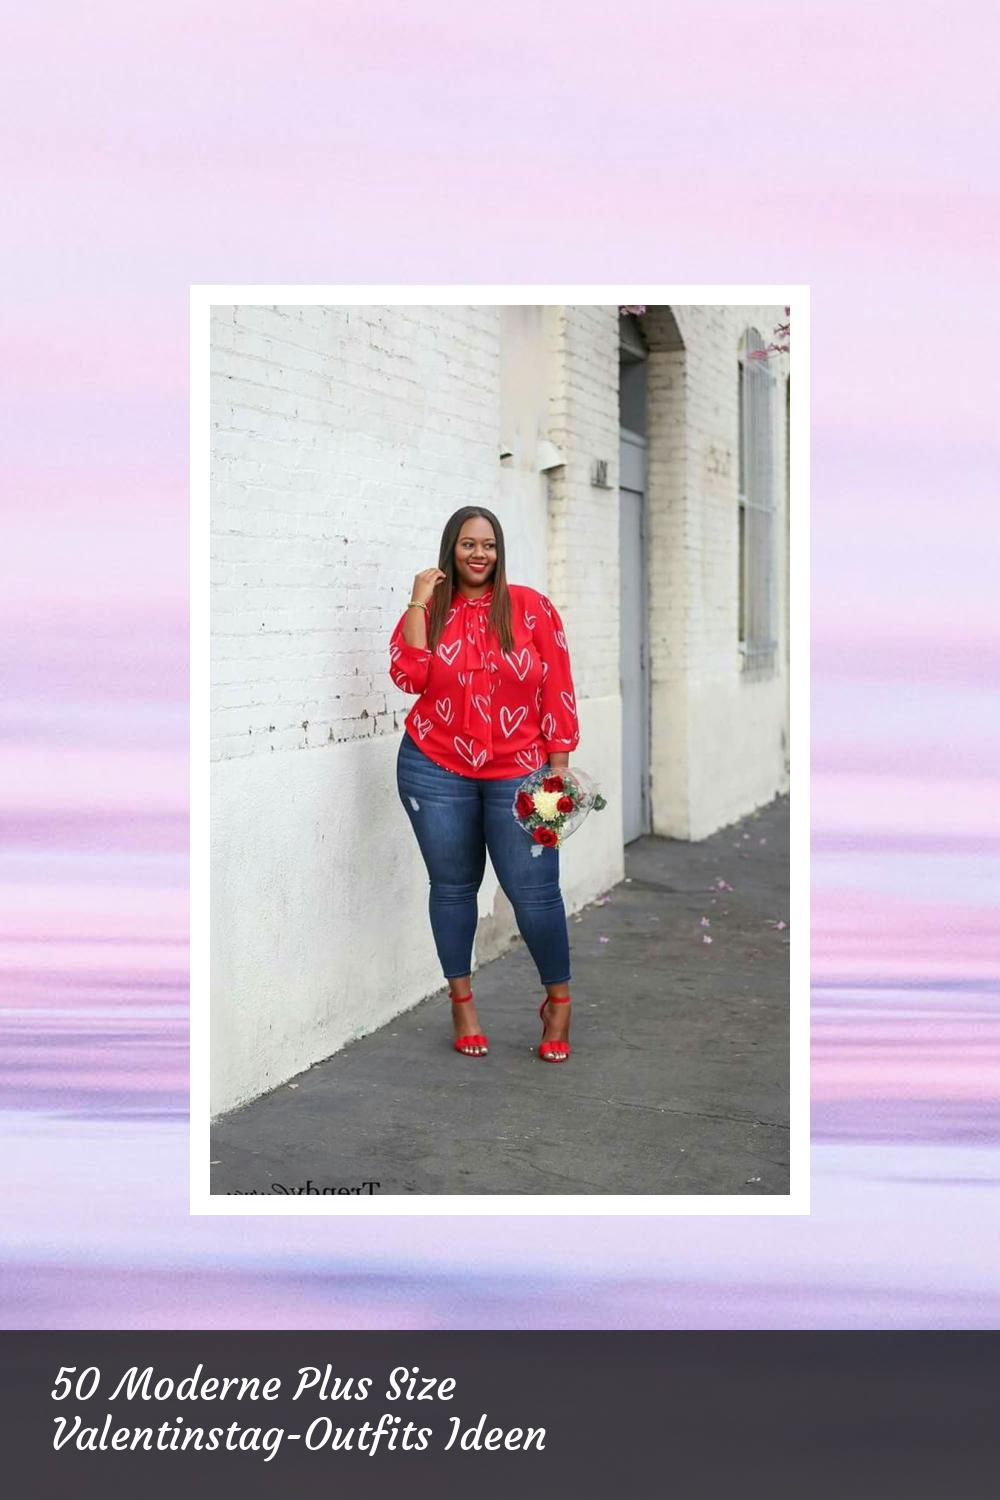 50 Moderne Plus Size Valentinstag-Outfits Ideen 56